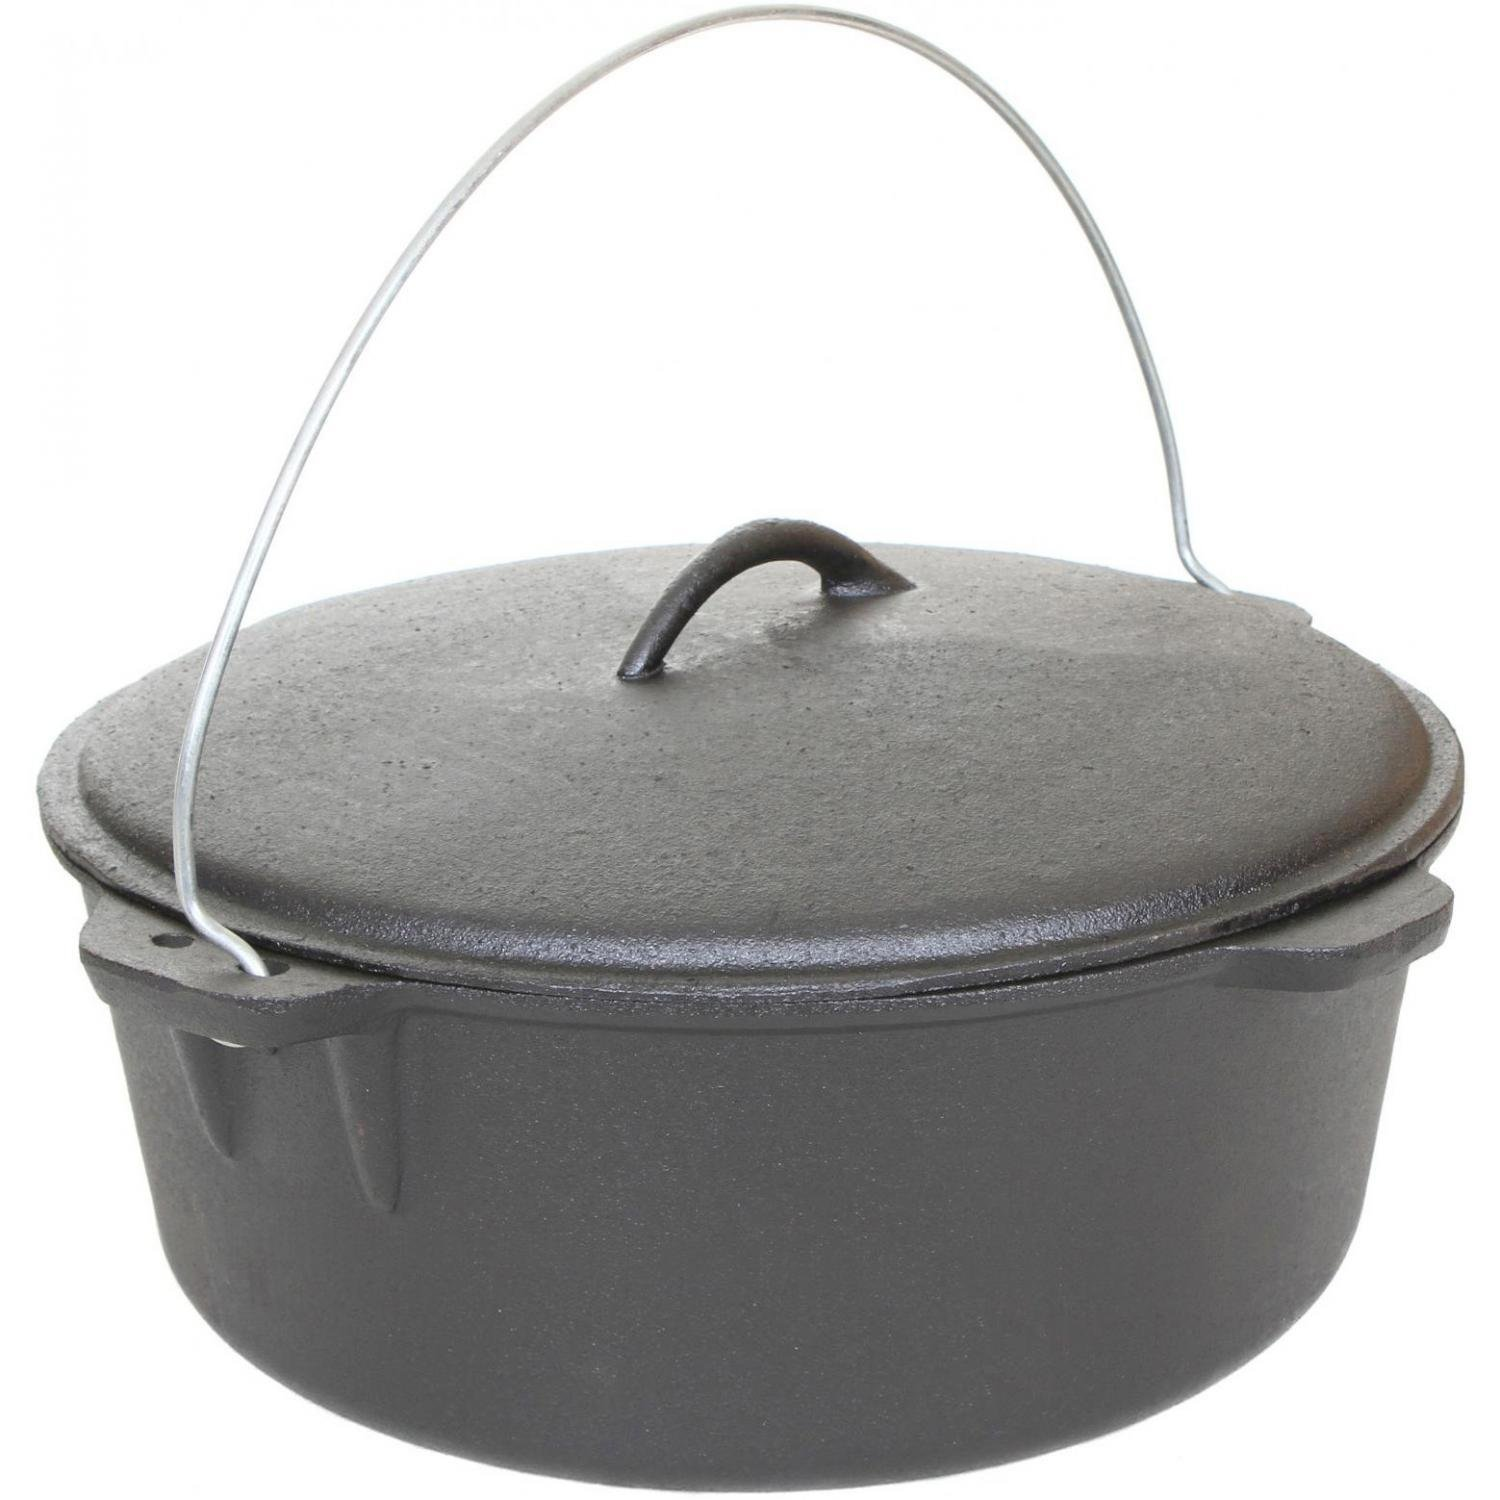 Cajun Cookware 12-quart Unseasoned Cast Iron Dutch Oven - Gl10489